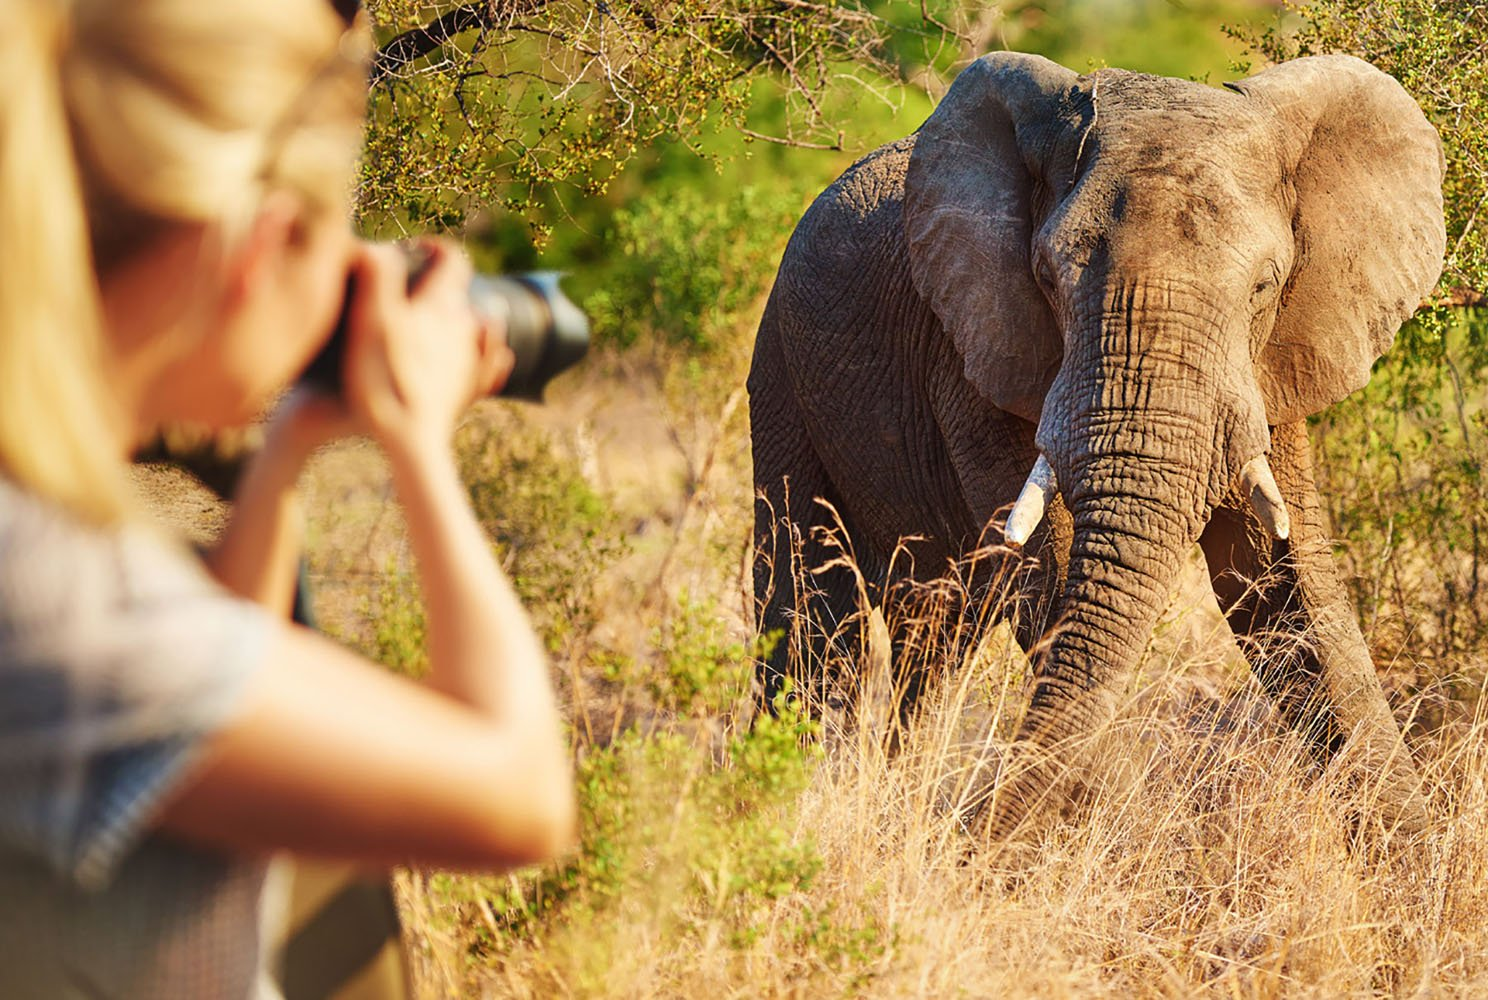 A woman photographing at elephant during an African safari.